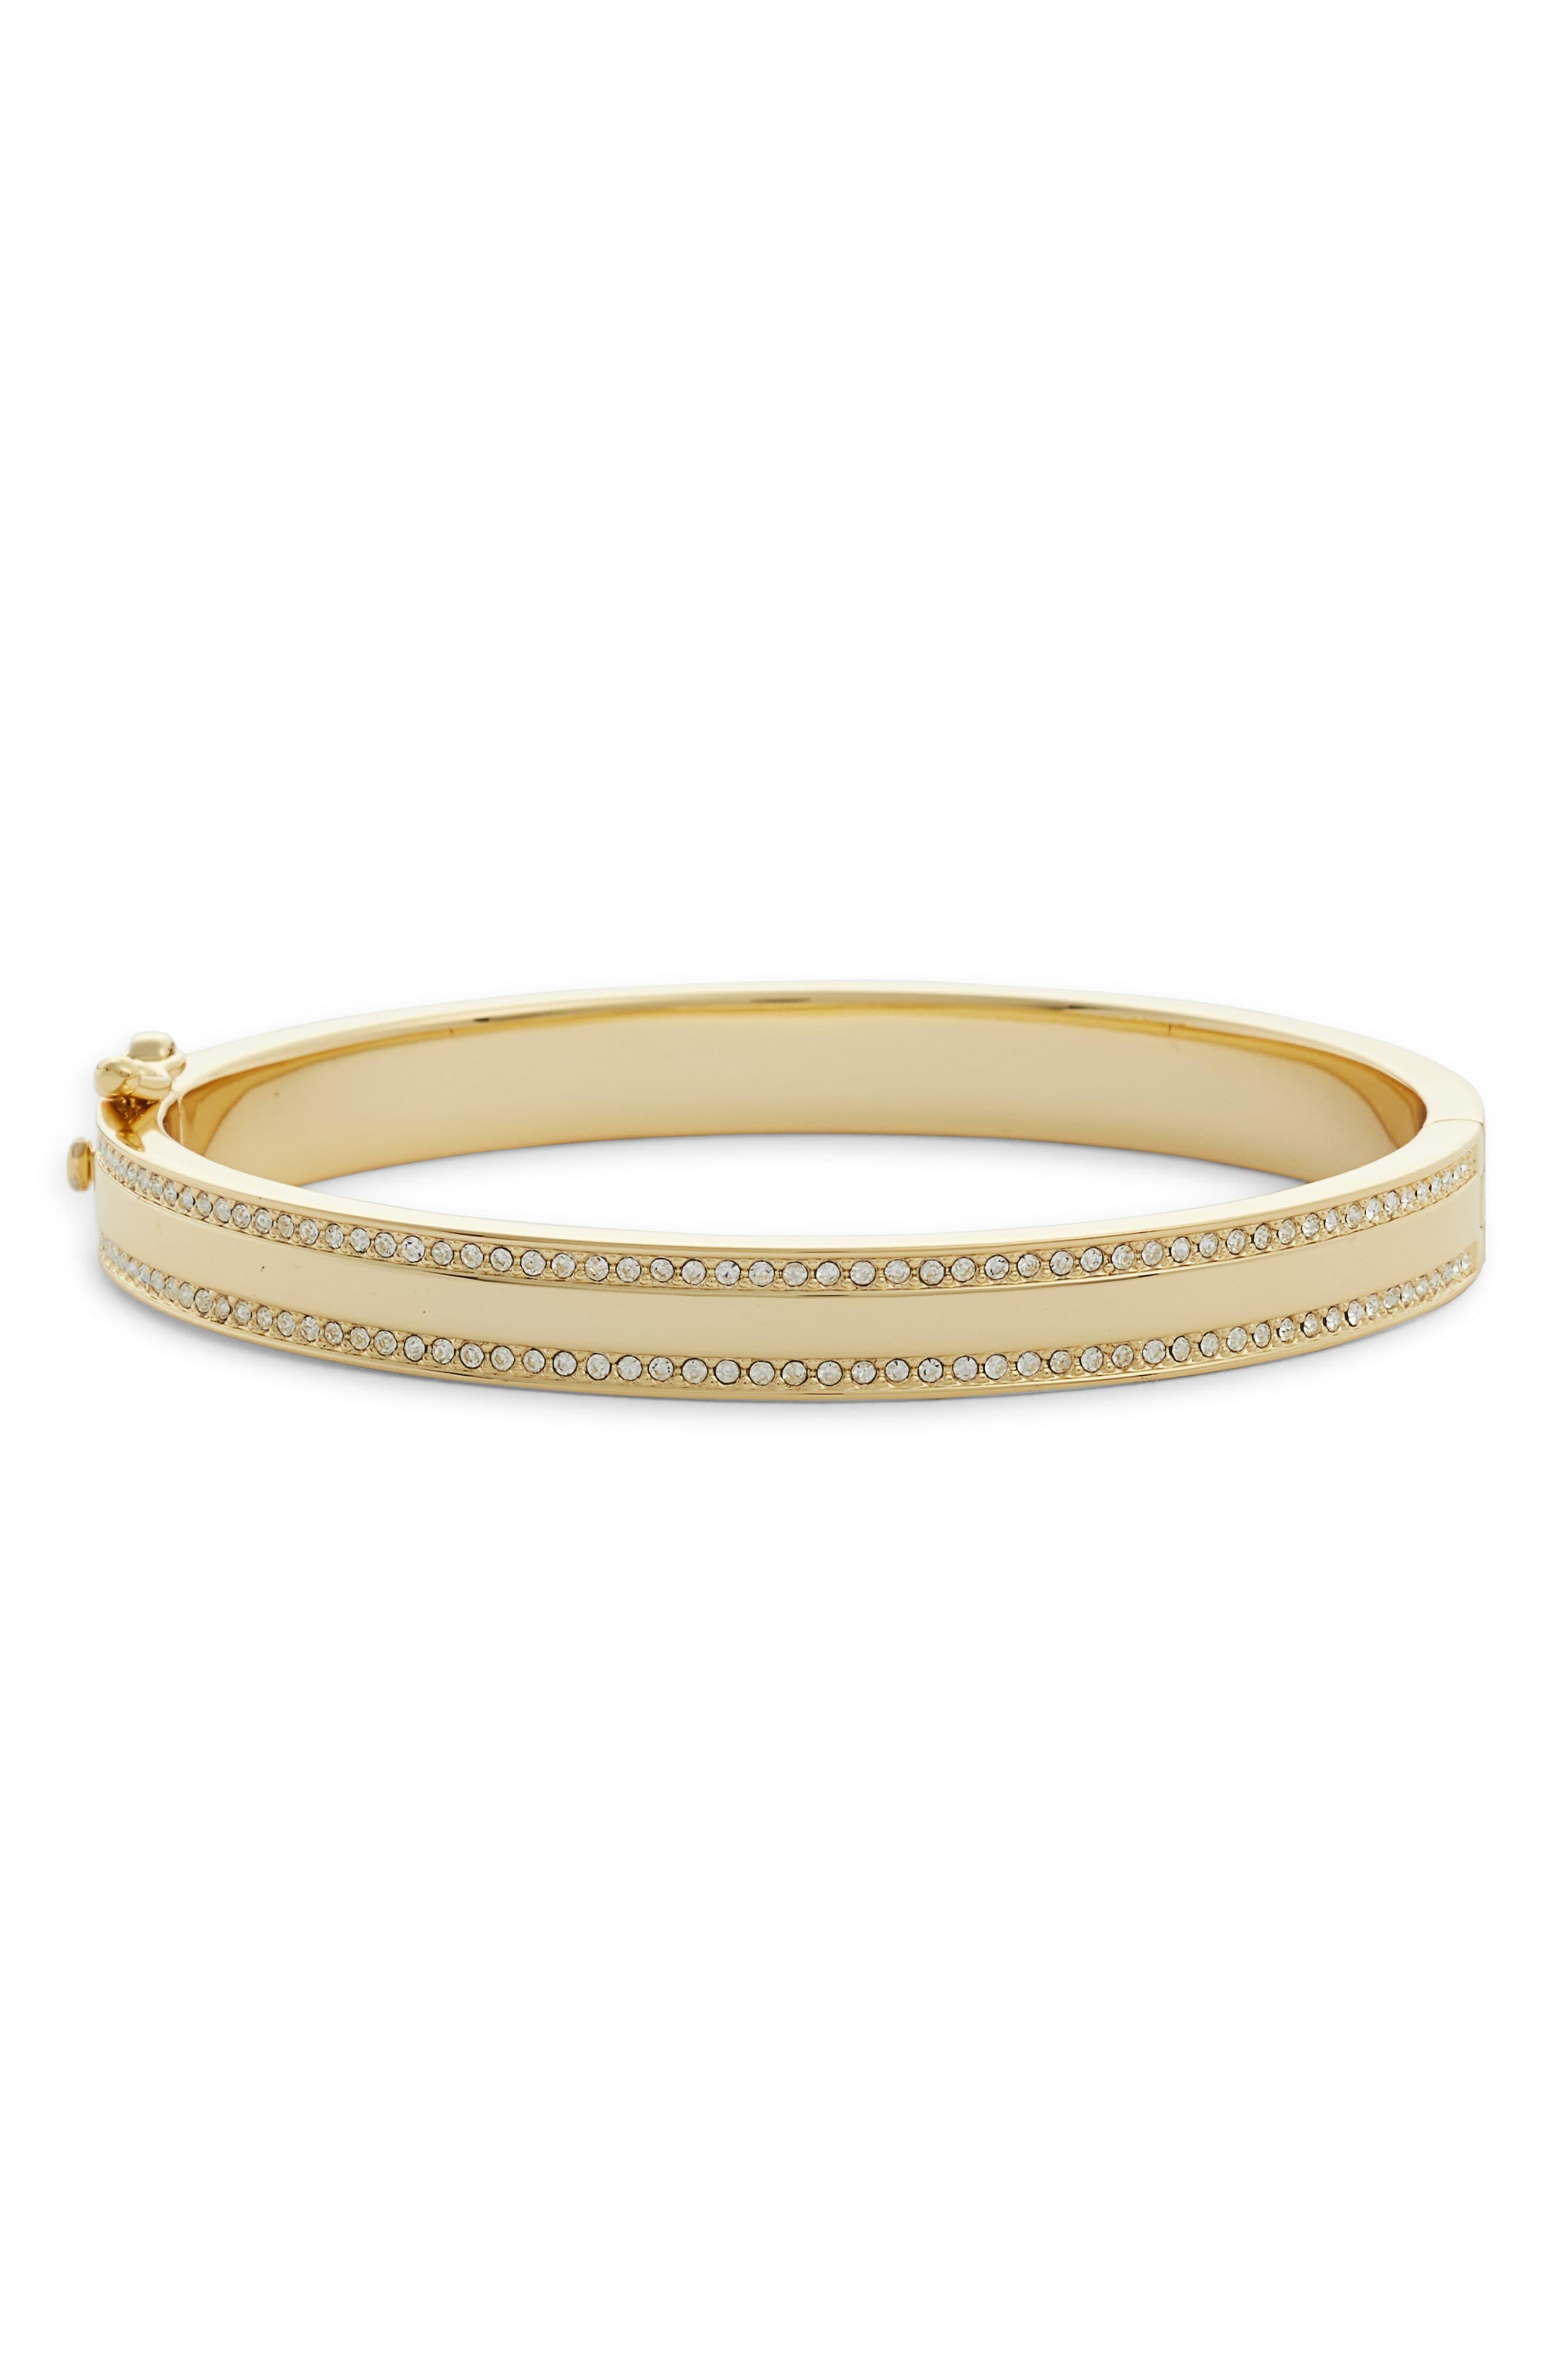 63298cee8 Lyst - Nordstrom Pavé Rim Bangle in Metallic